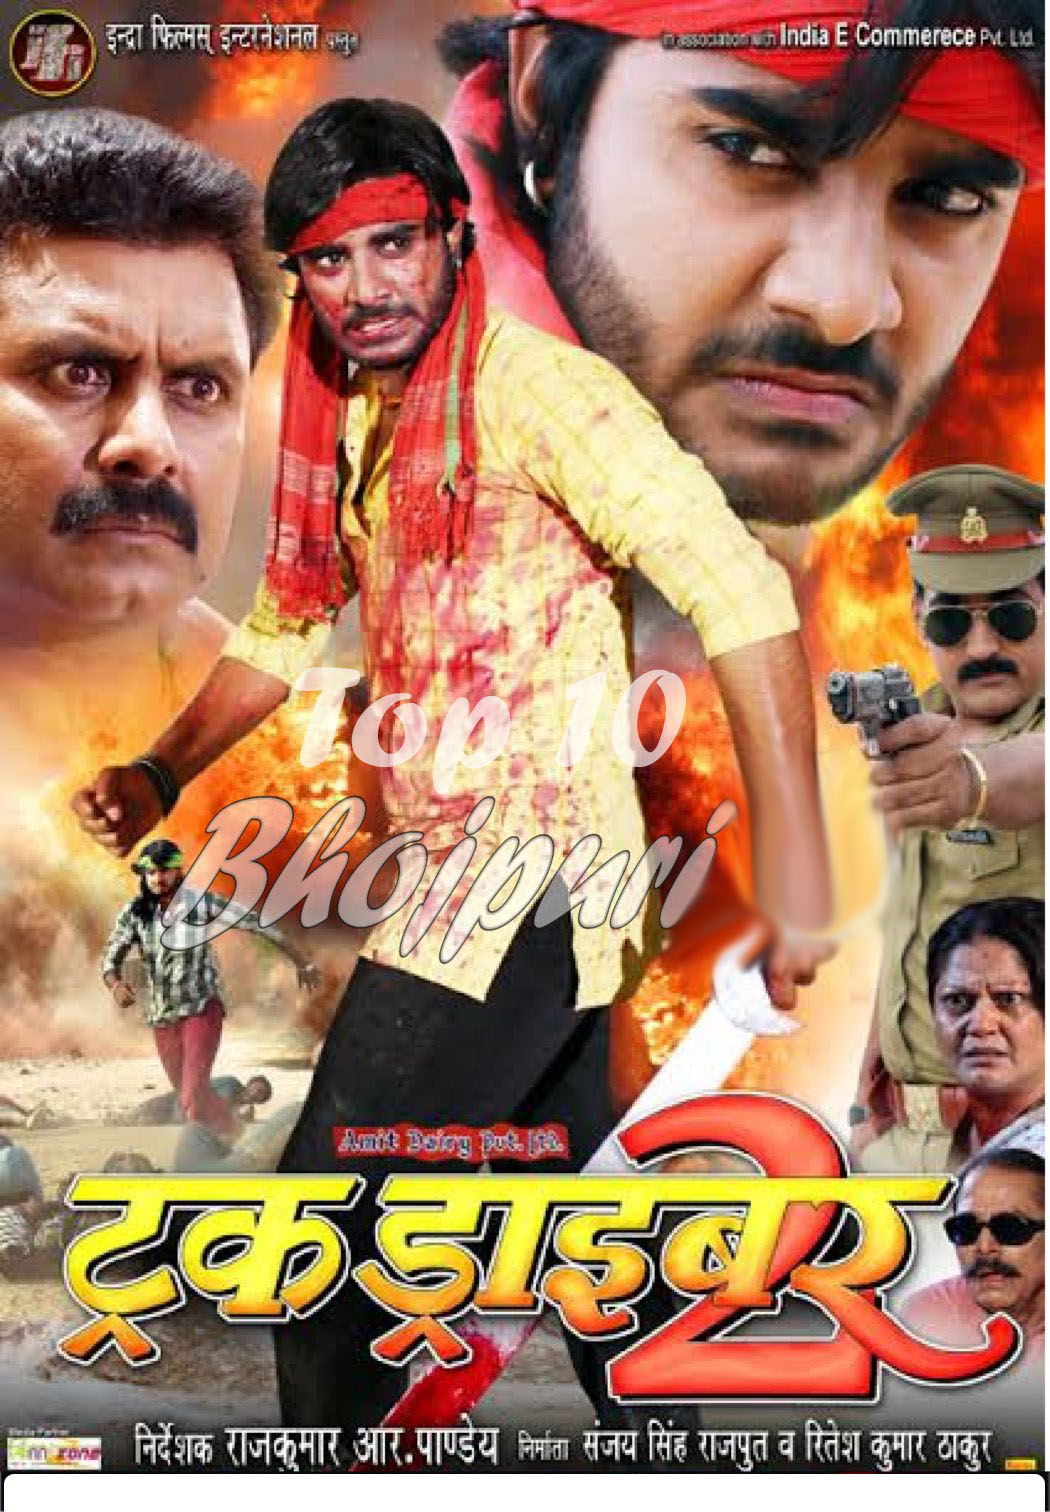 Pradeep Pandey, Ritesh Pandey Bhojpuri movie Truck Driver 2 2016 wiki, full star-cast, Release date, Actor, actress, Song name, photo, poster, trailer, wallpaper